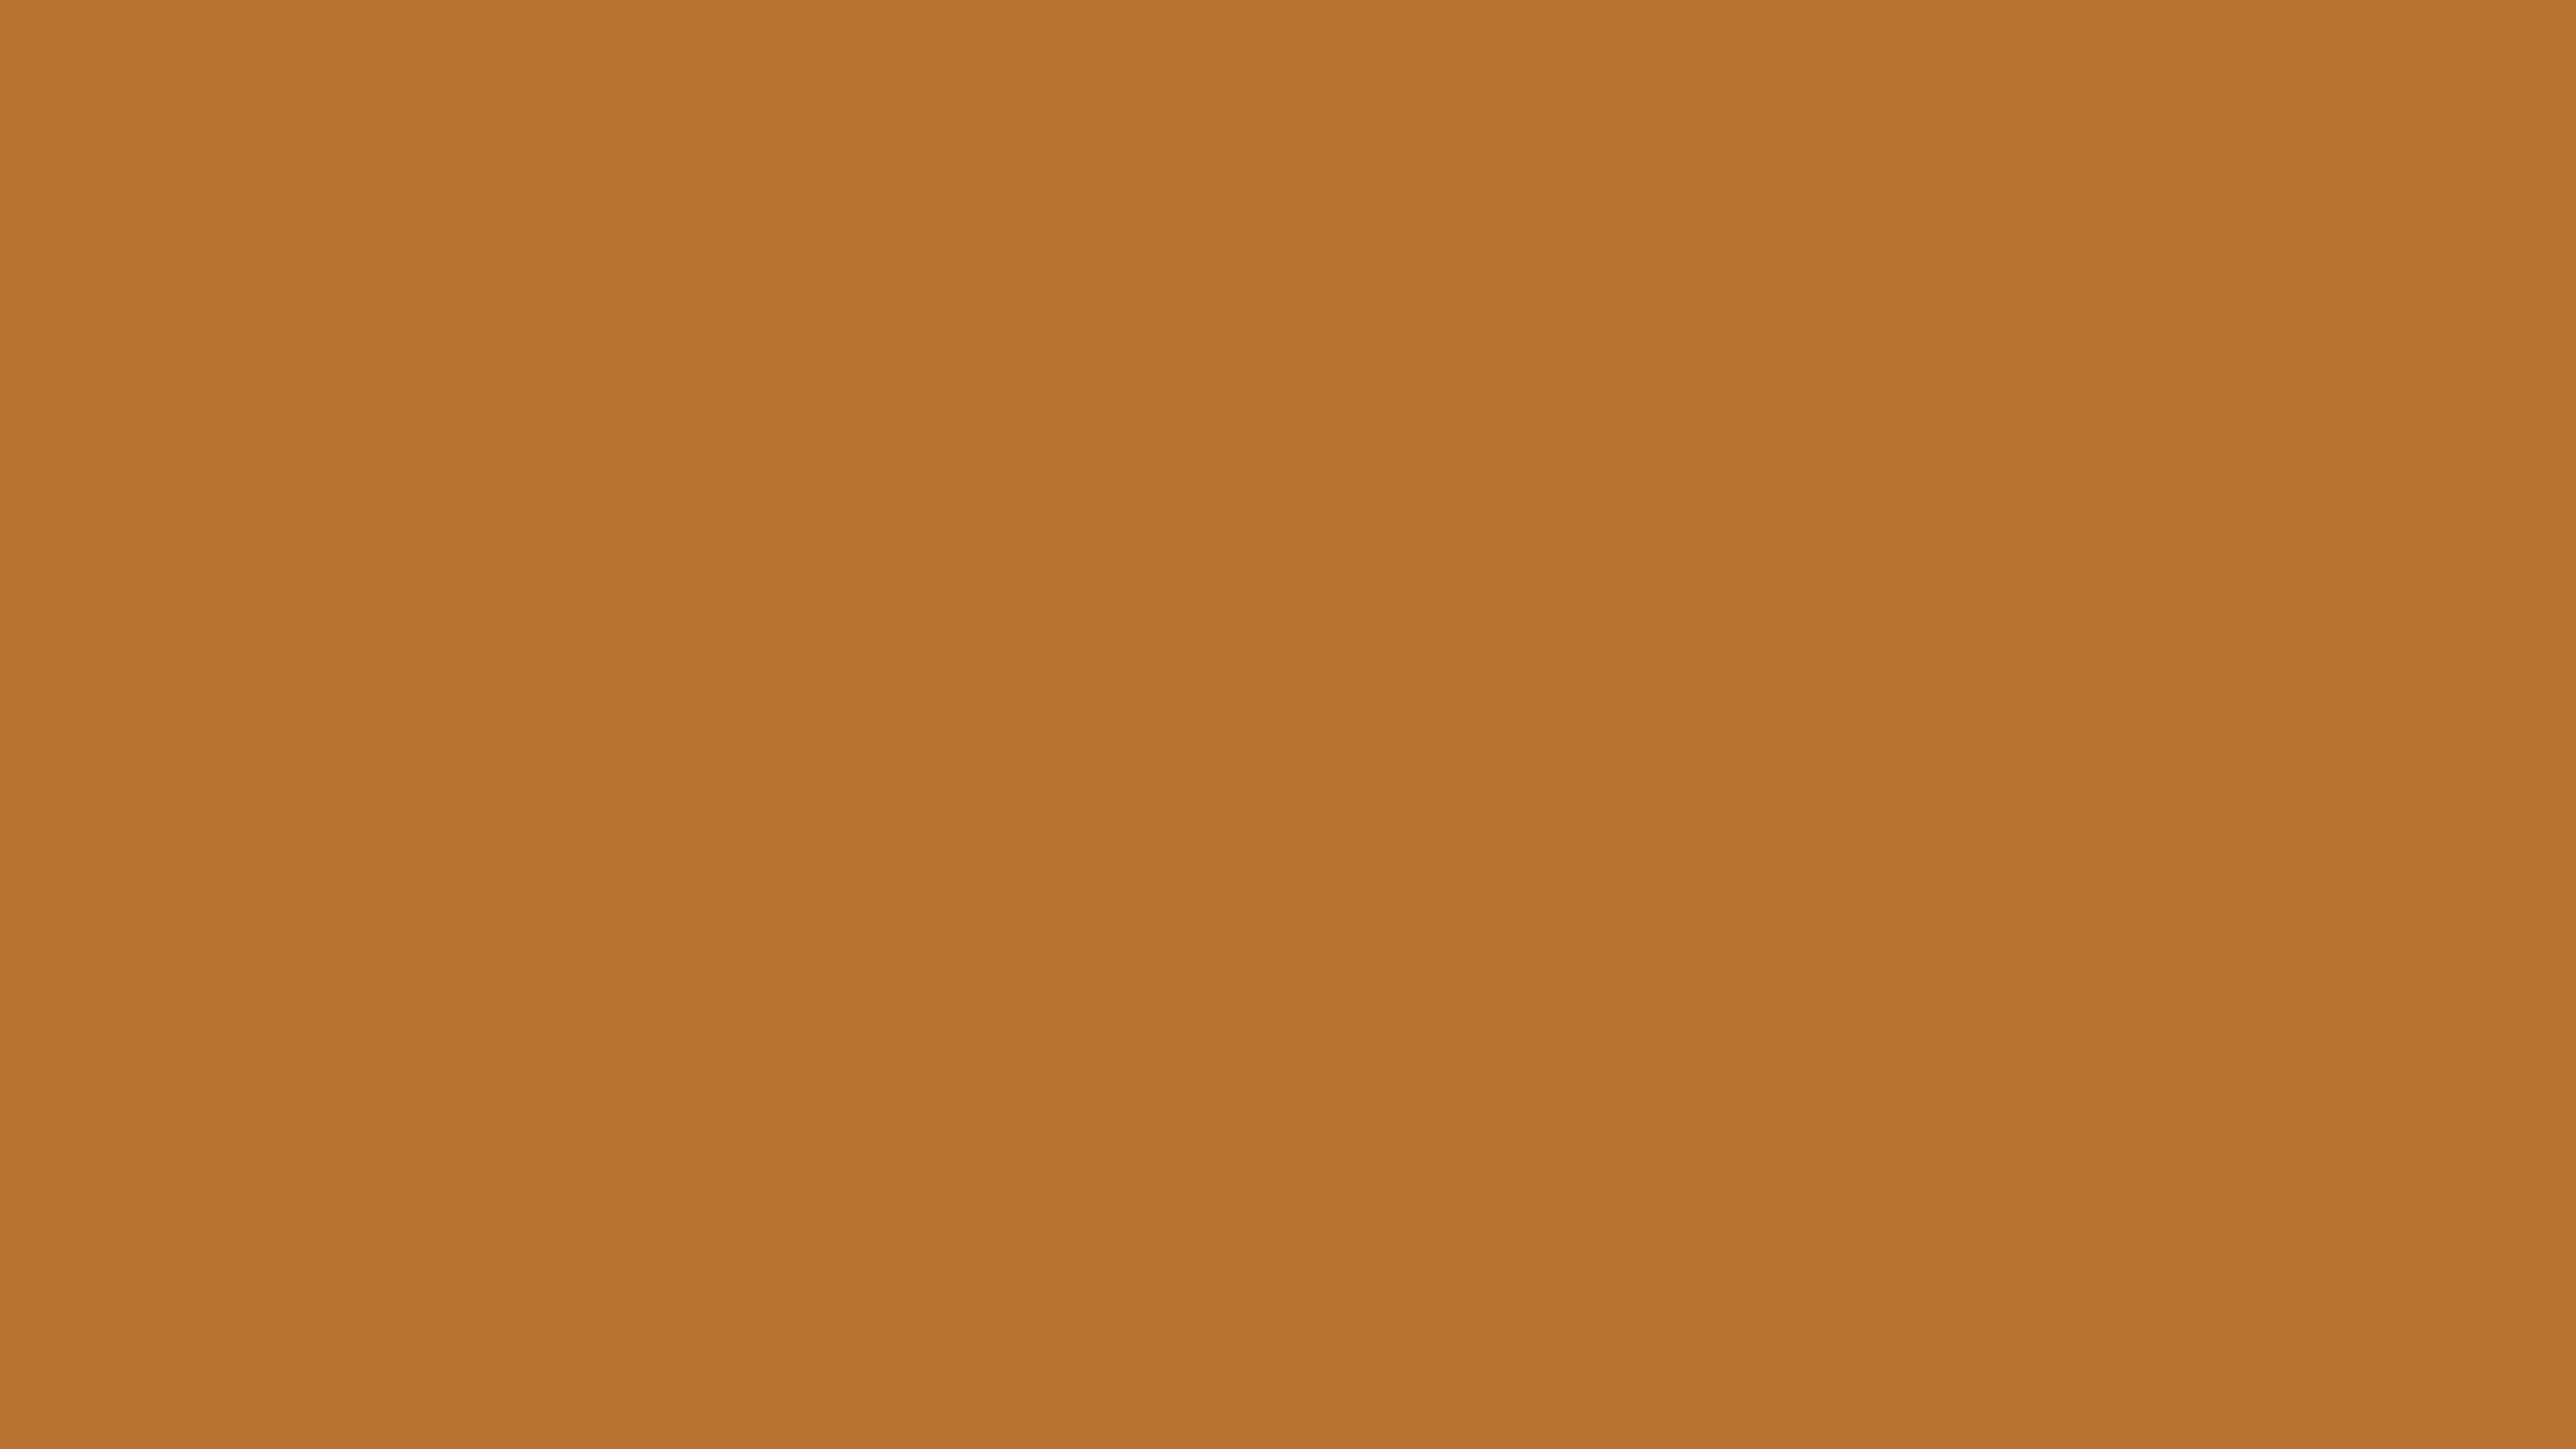 5120x2880 Copper Solid Color Background